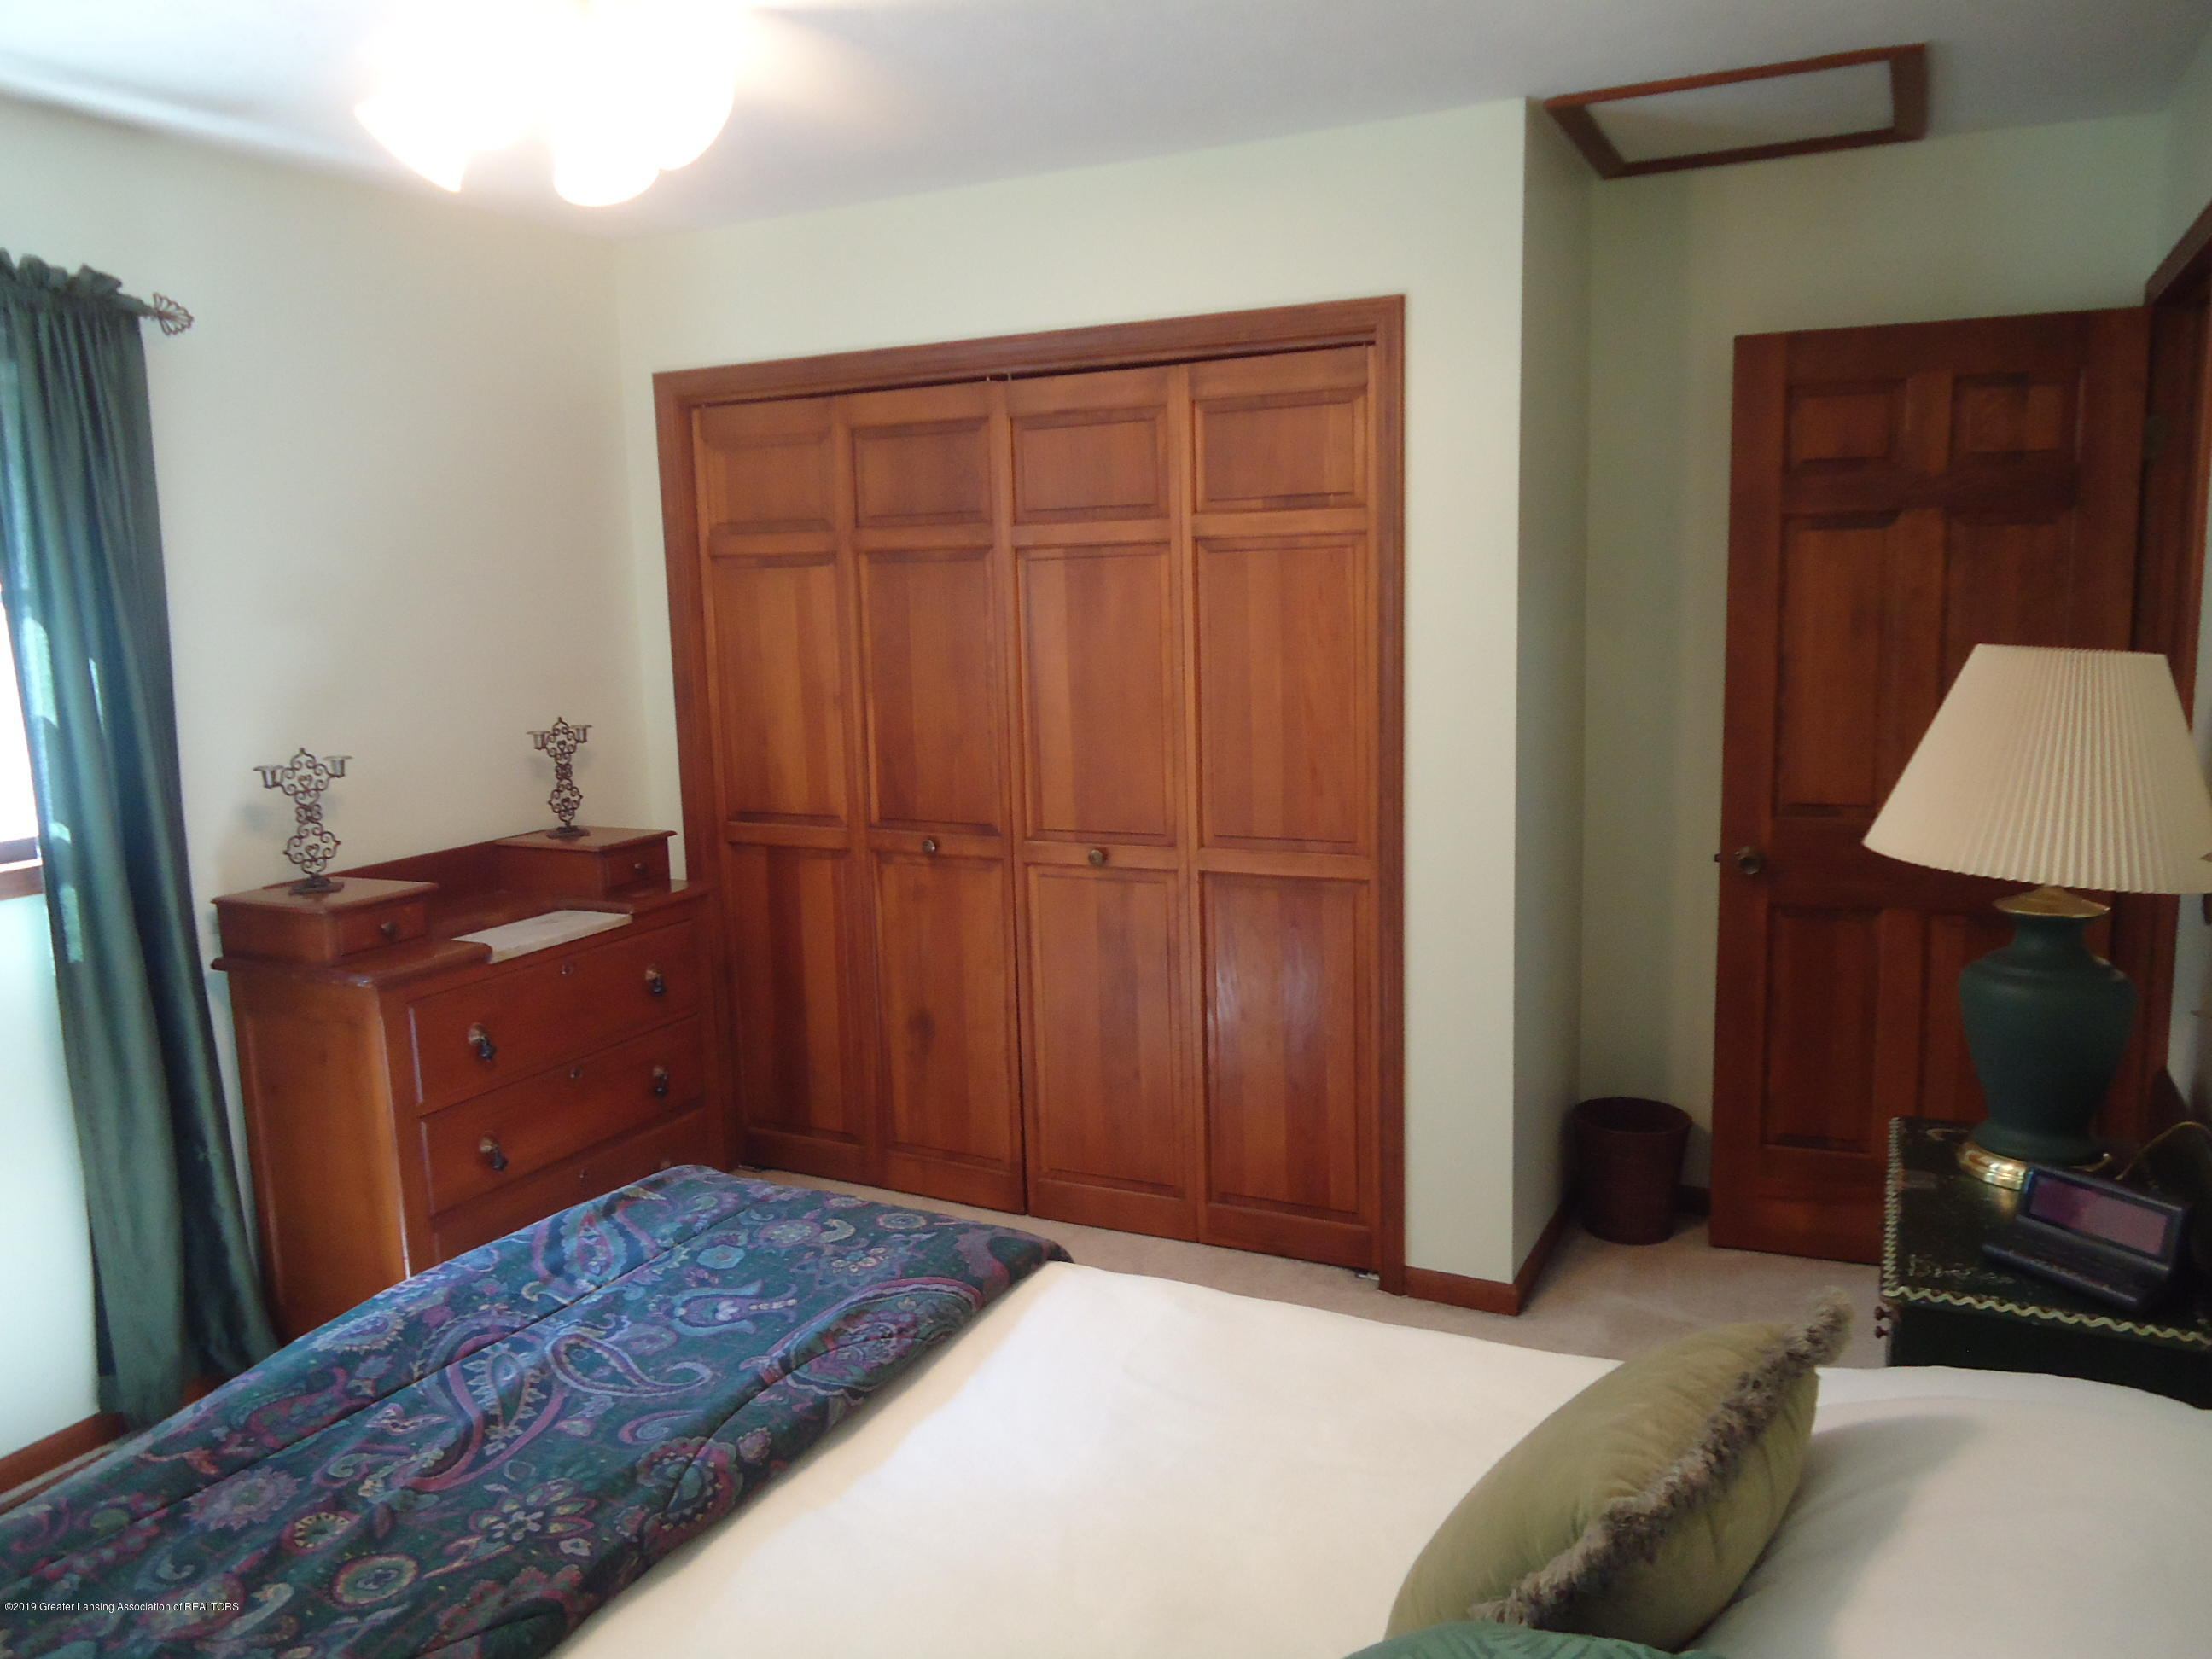 530 S Ainger Rd - Bedroom 2a - 25